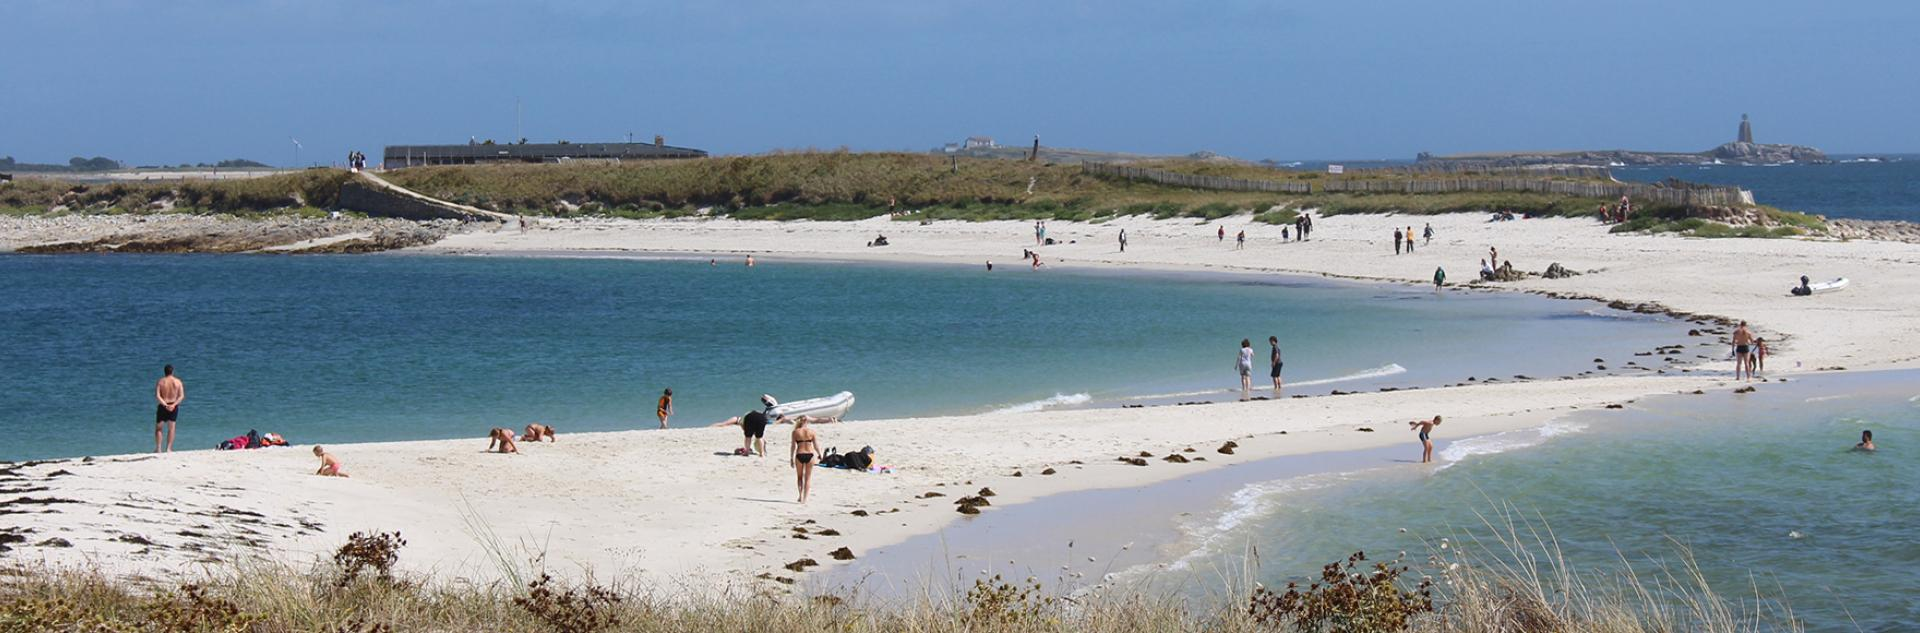 plage-finistere-sud